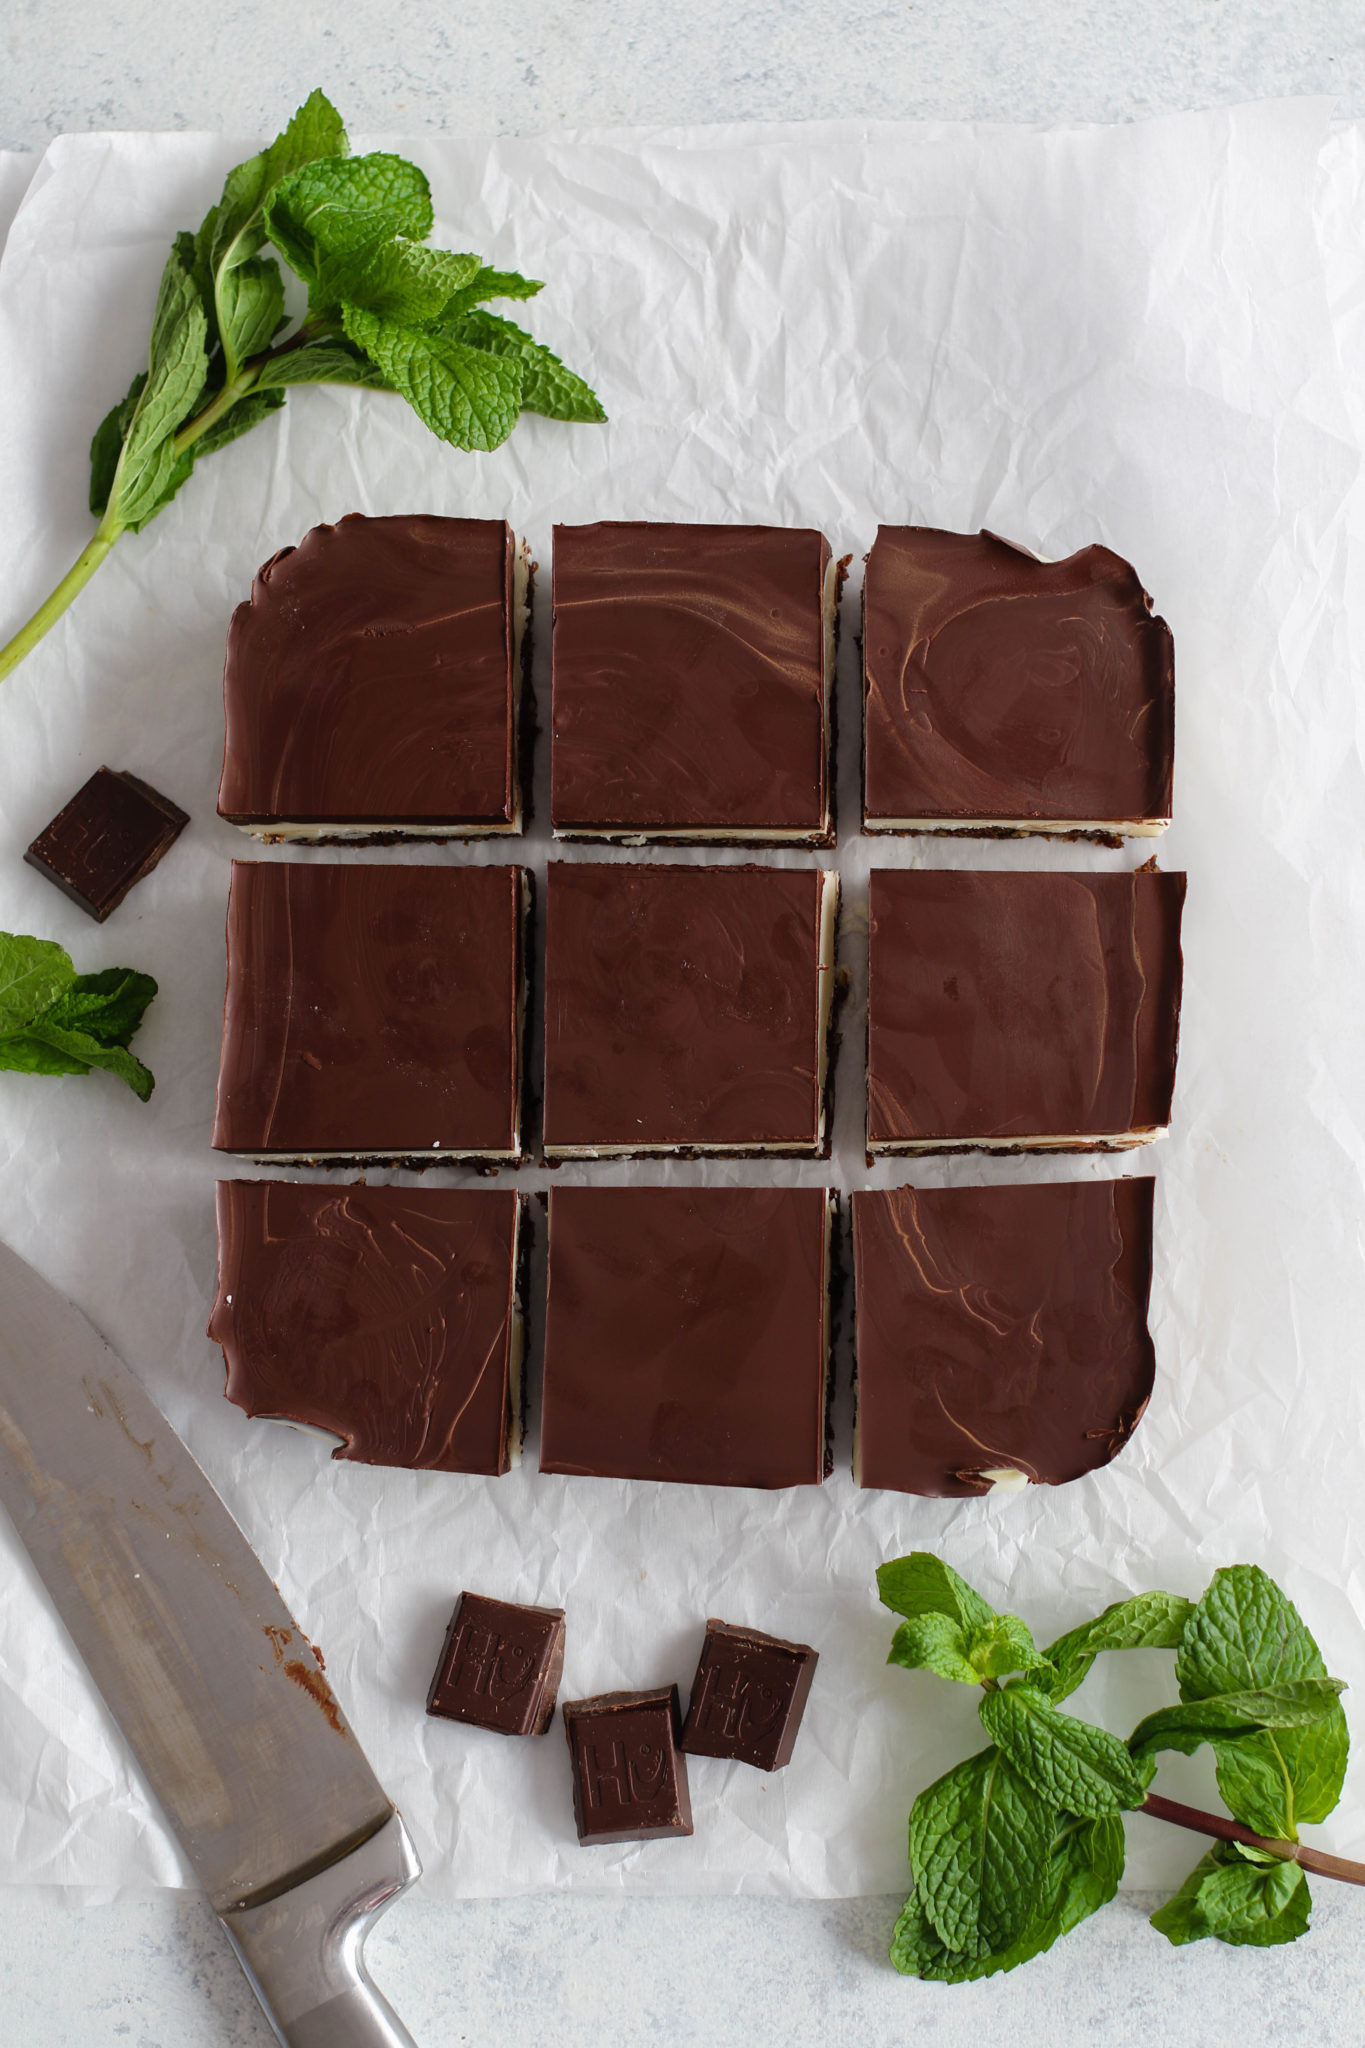 Mint Dark Chocolate Coconut Layer Bars sliced